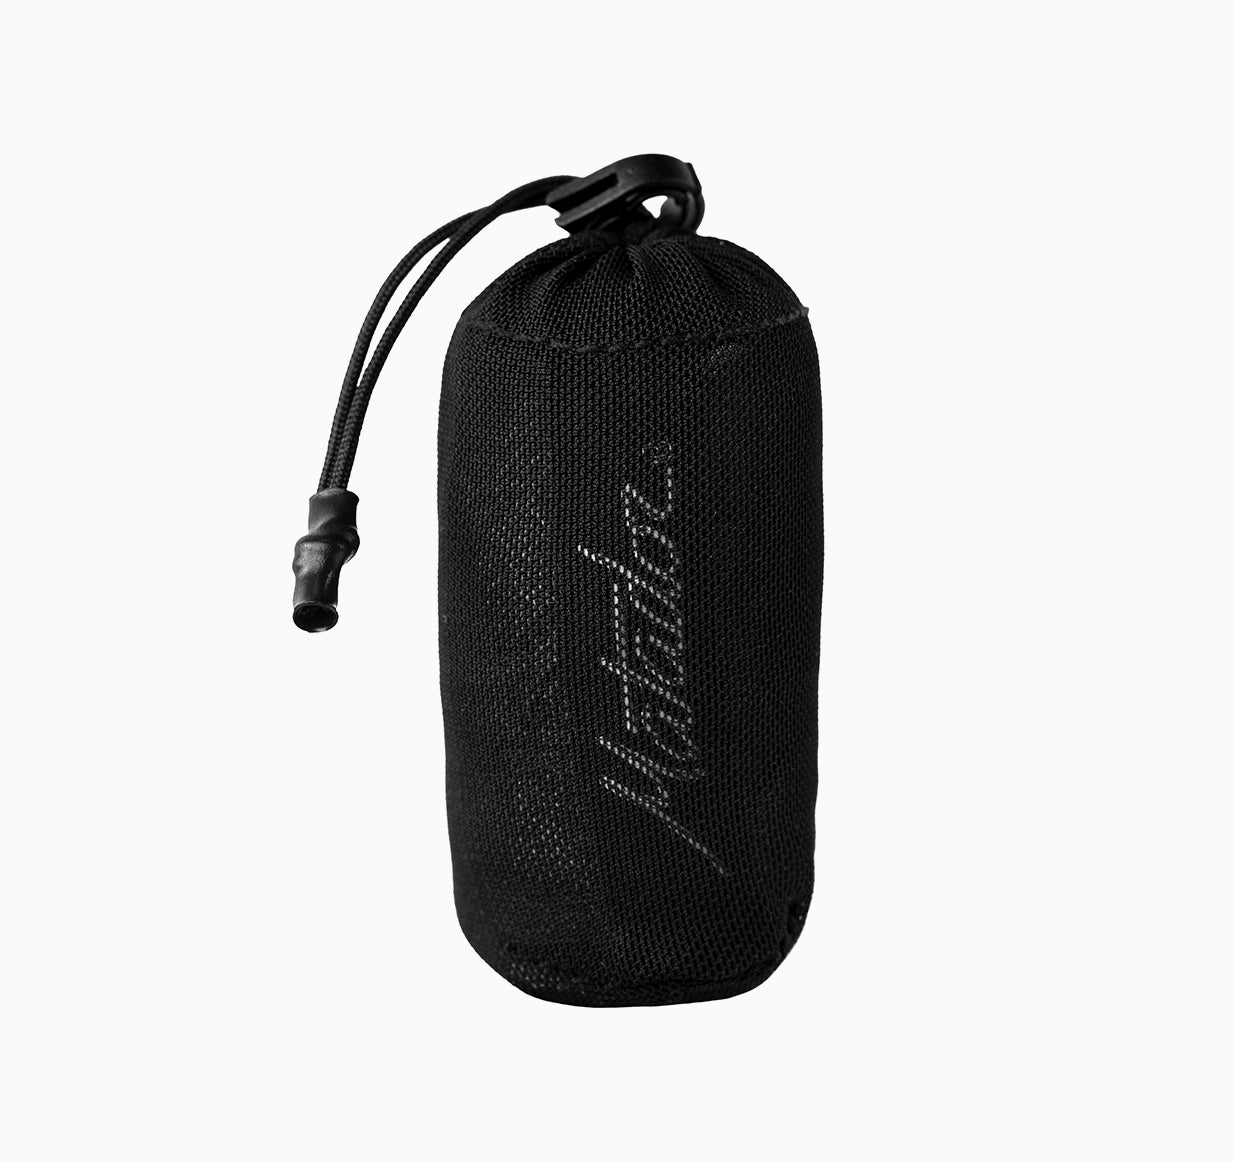 Packed down trek towel pouch on white background